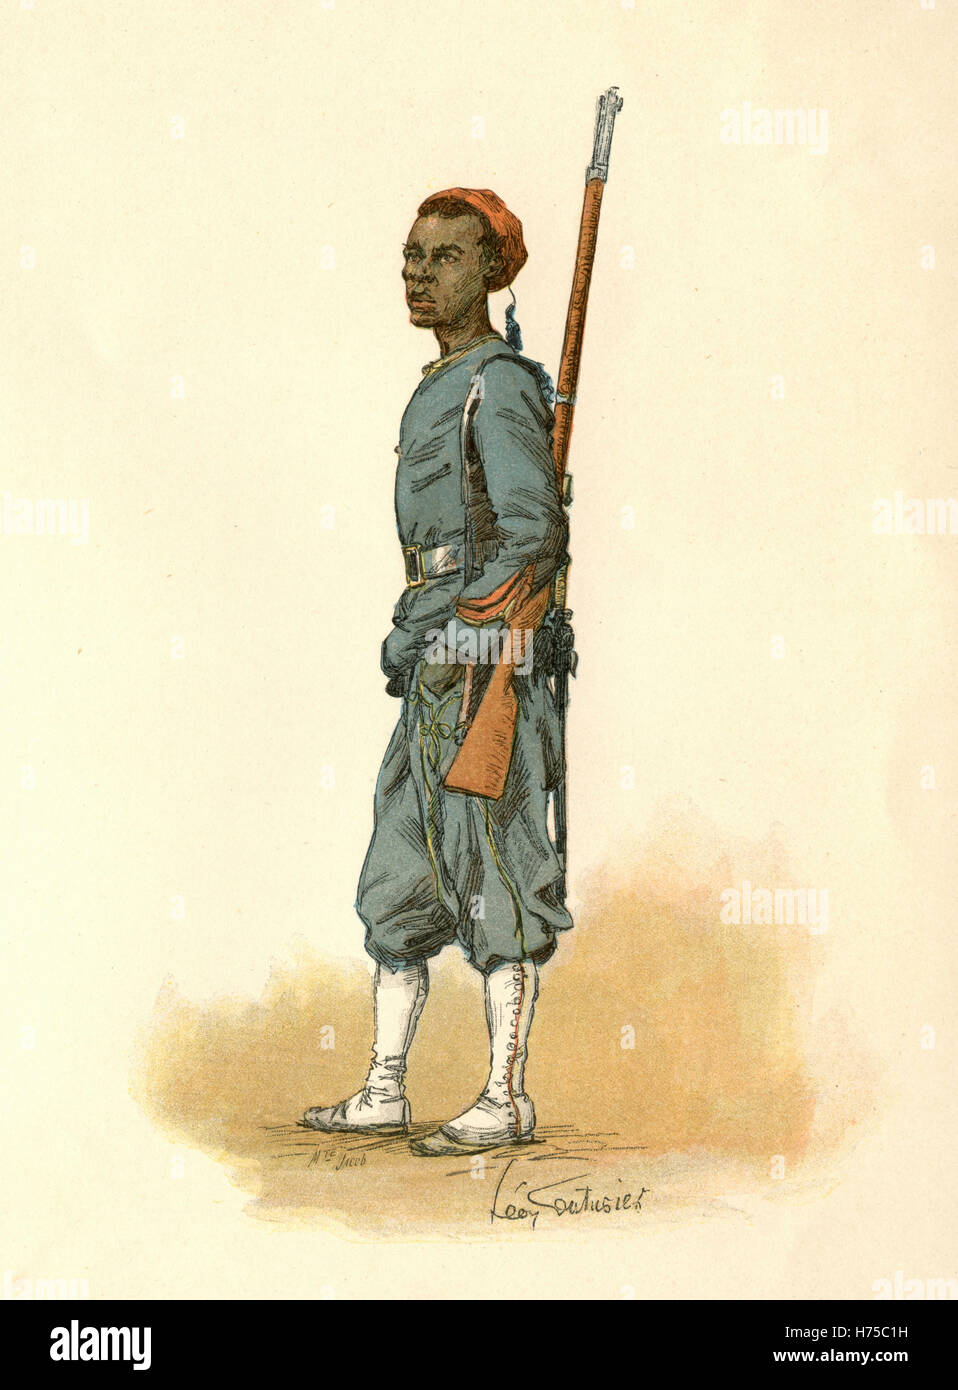 Senegalese Sniper, Illustration for l'Exposition Universelle - Stock Image